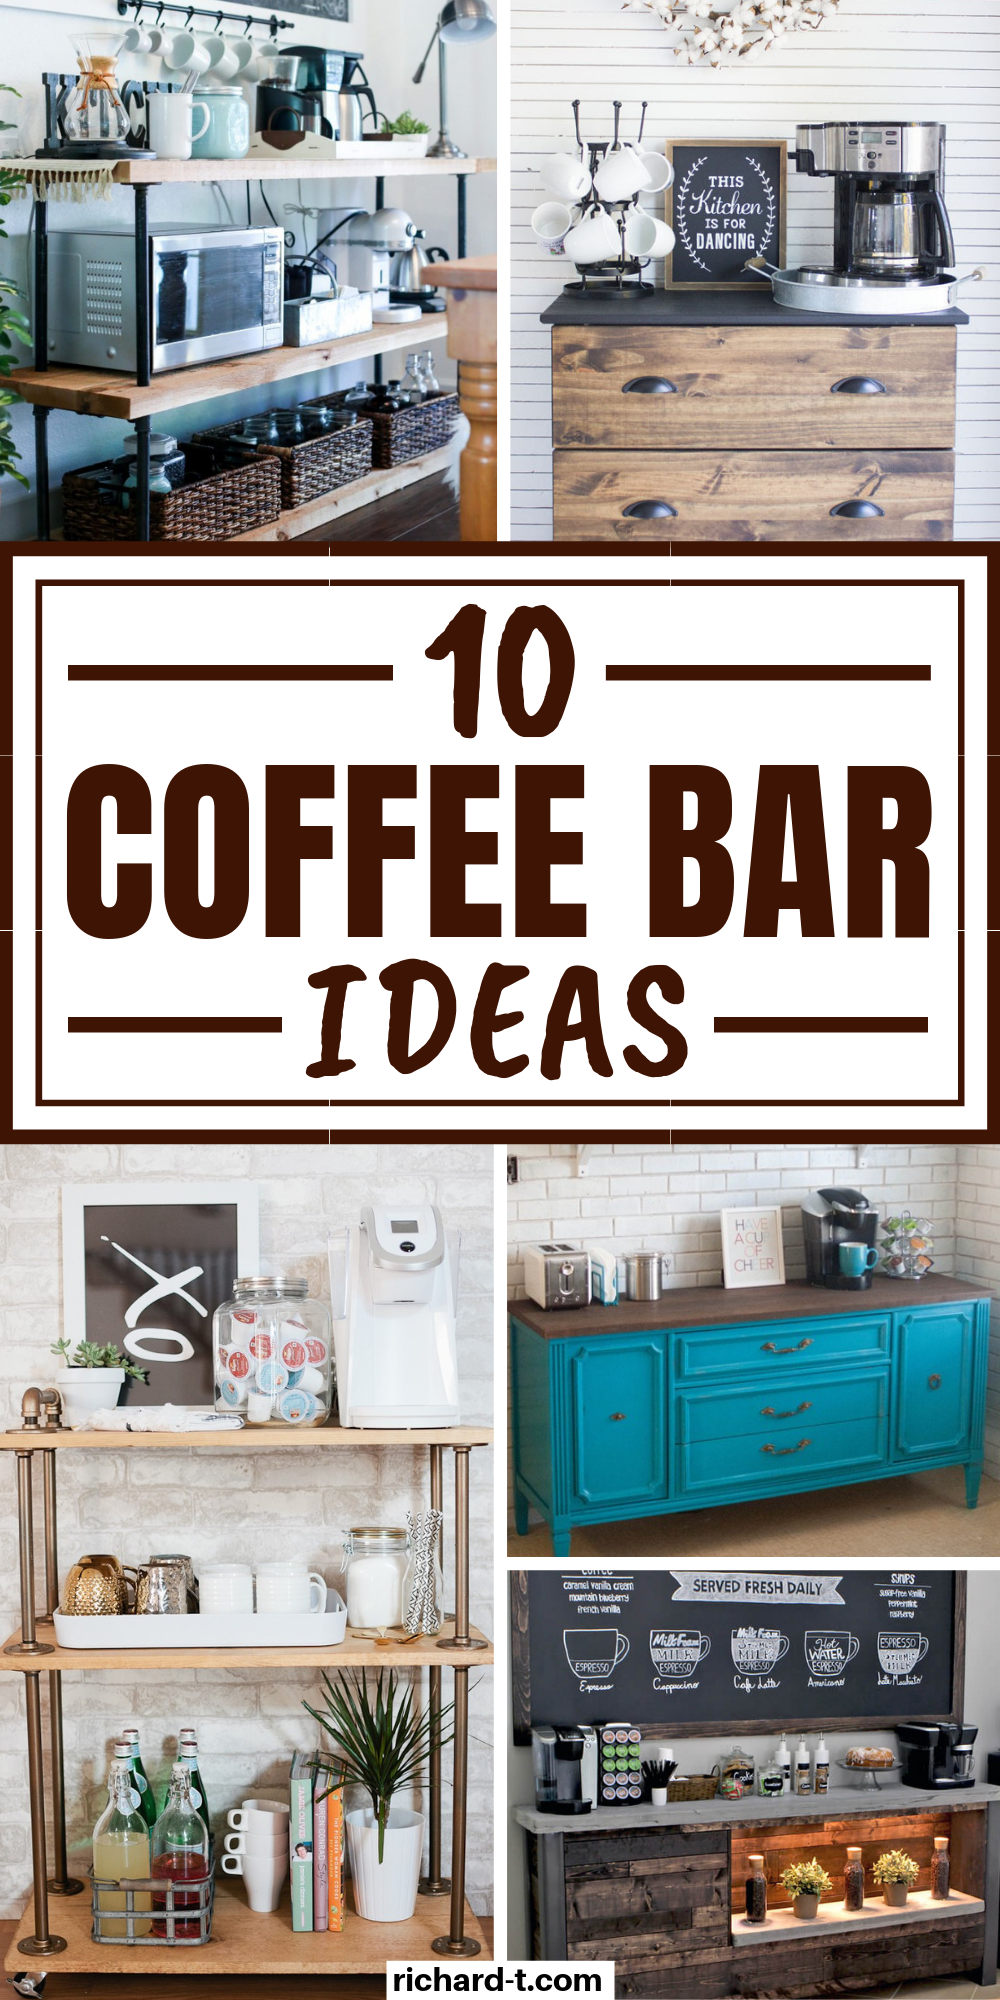 10 Best Coffee Bar Ideas You Need To Have #coffeebarideas